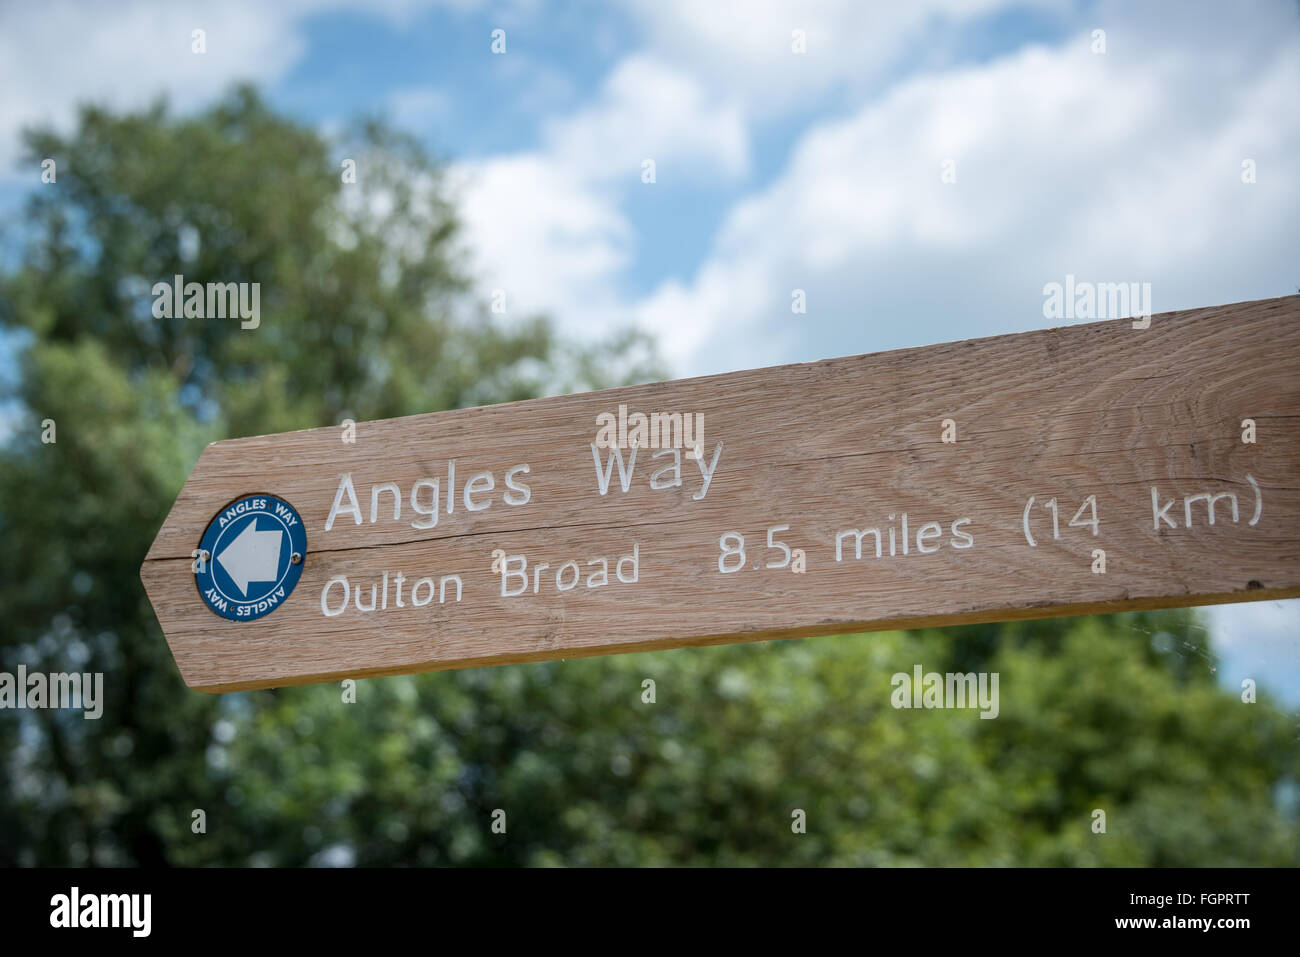 Angles Way sign, Beccles, Suffolk - Stock Image